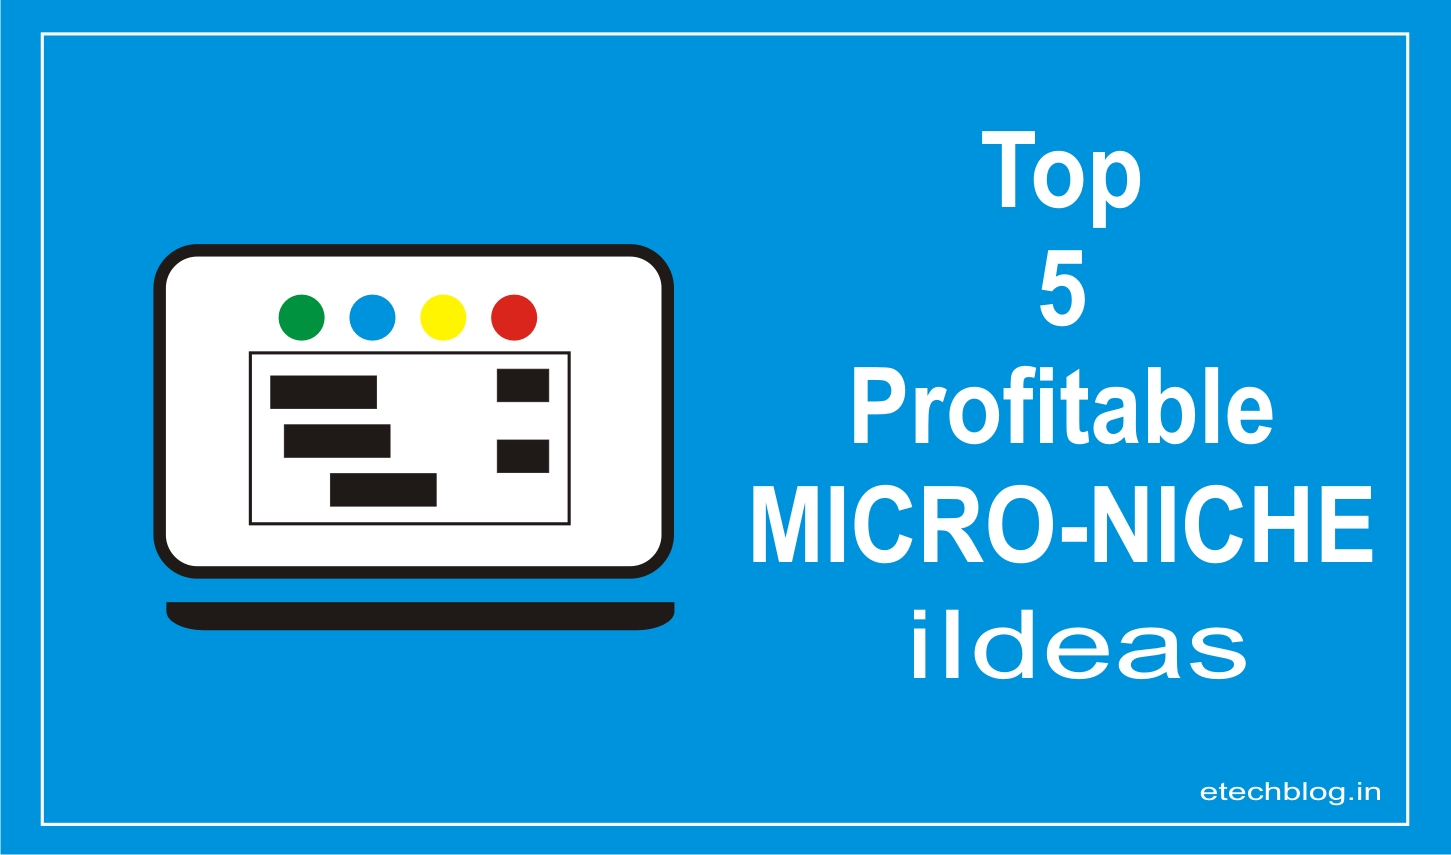 Top Profitable Micro-Niche Ideas